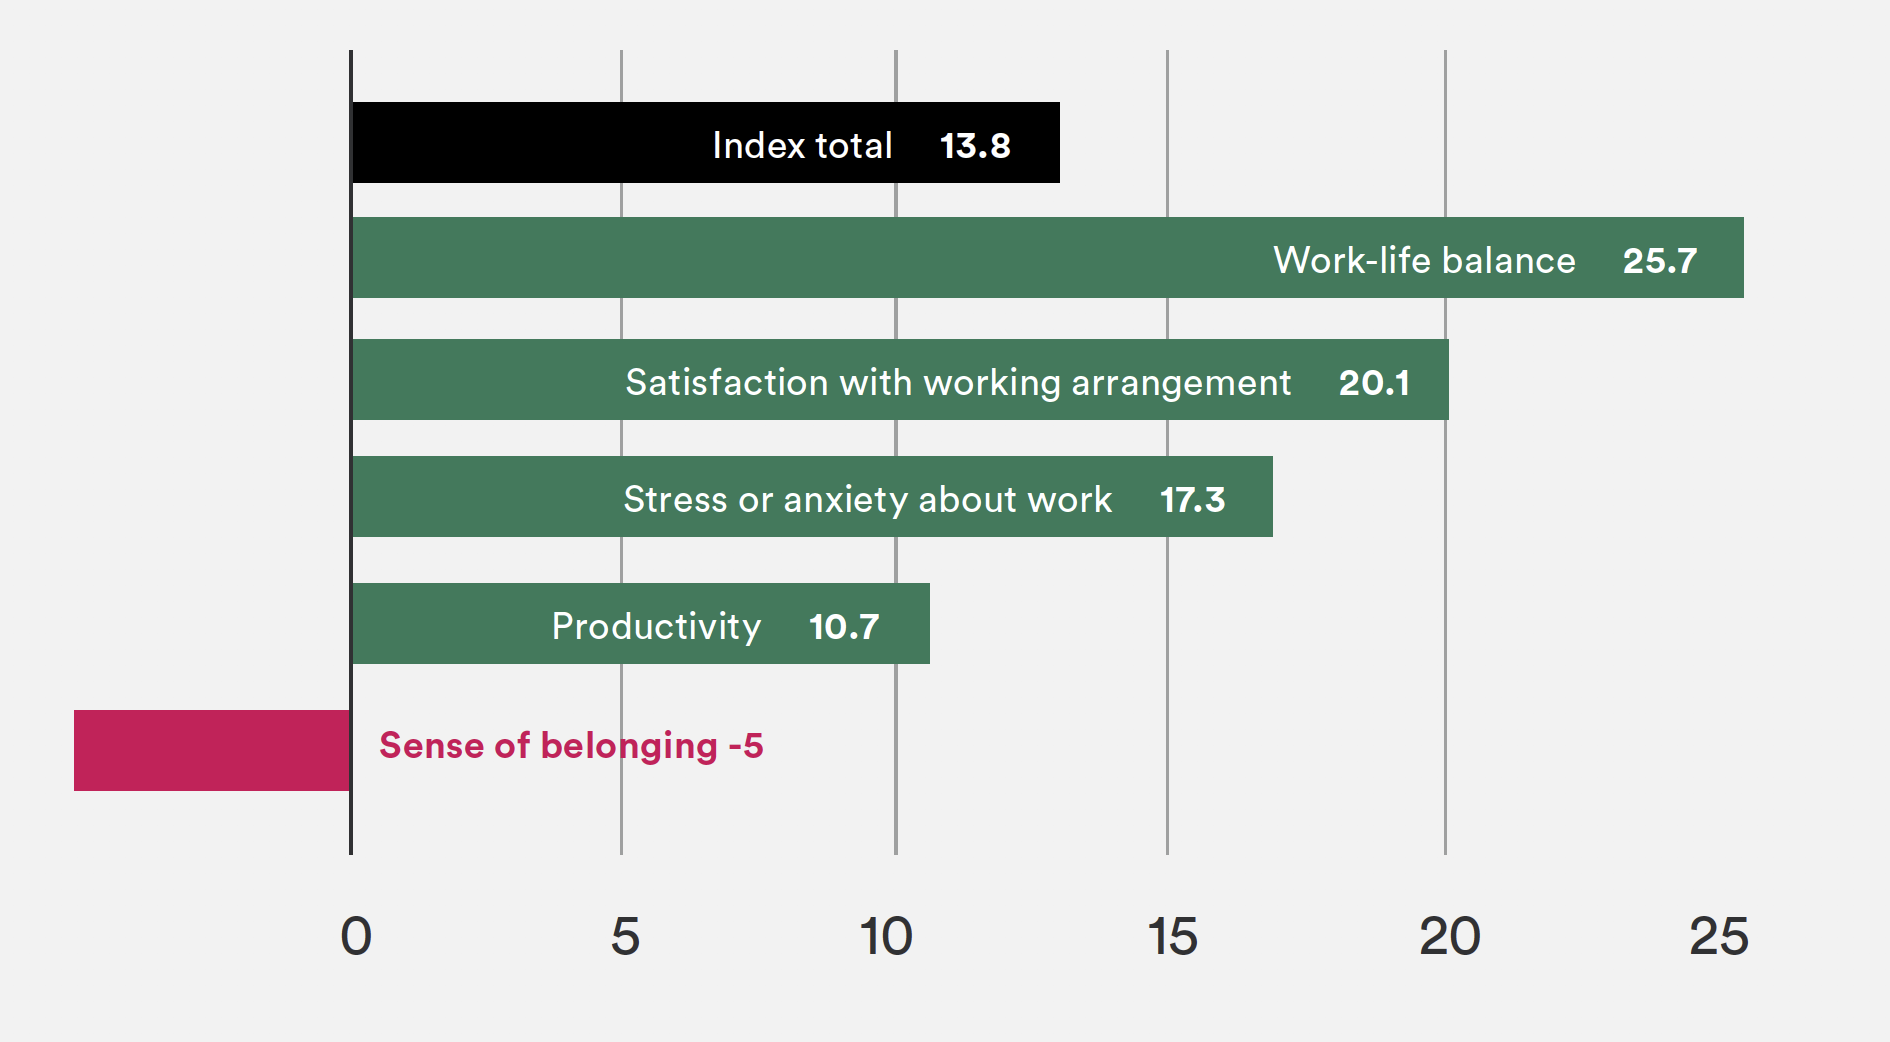 Remote Employee Experience Index: The Remote Employee Experience Index measures perceptions of key elements of working life such as productivity, sense of belonging, and work-life balance. Source: Slack-commissioned remote work survey with research firm GlobalWebIndex